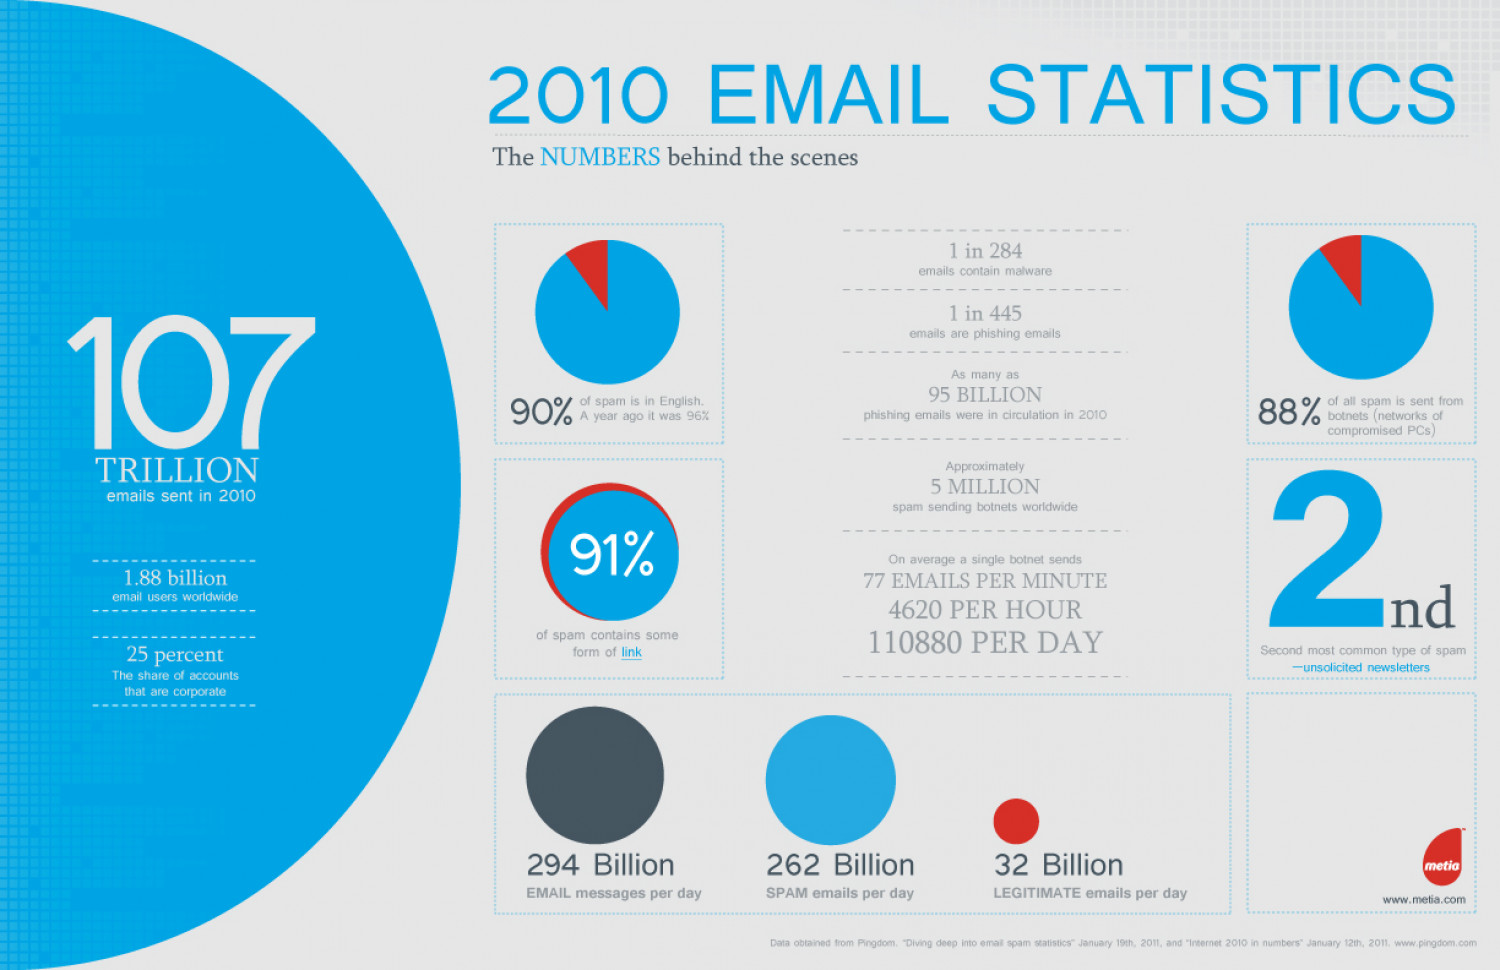 2010 Email Statistics  Infographic